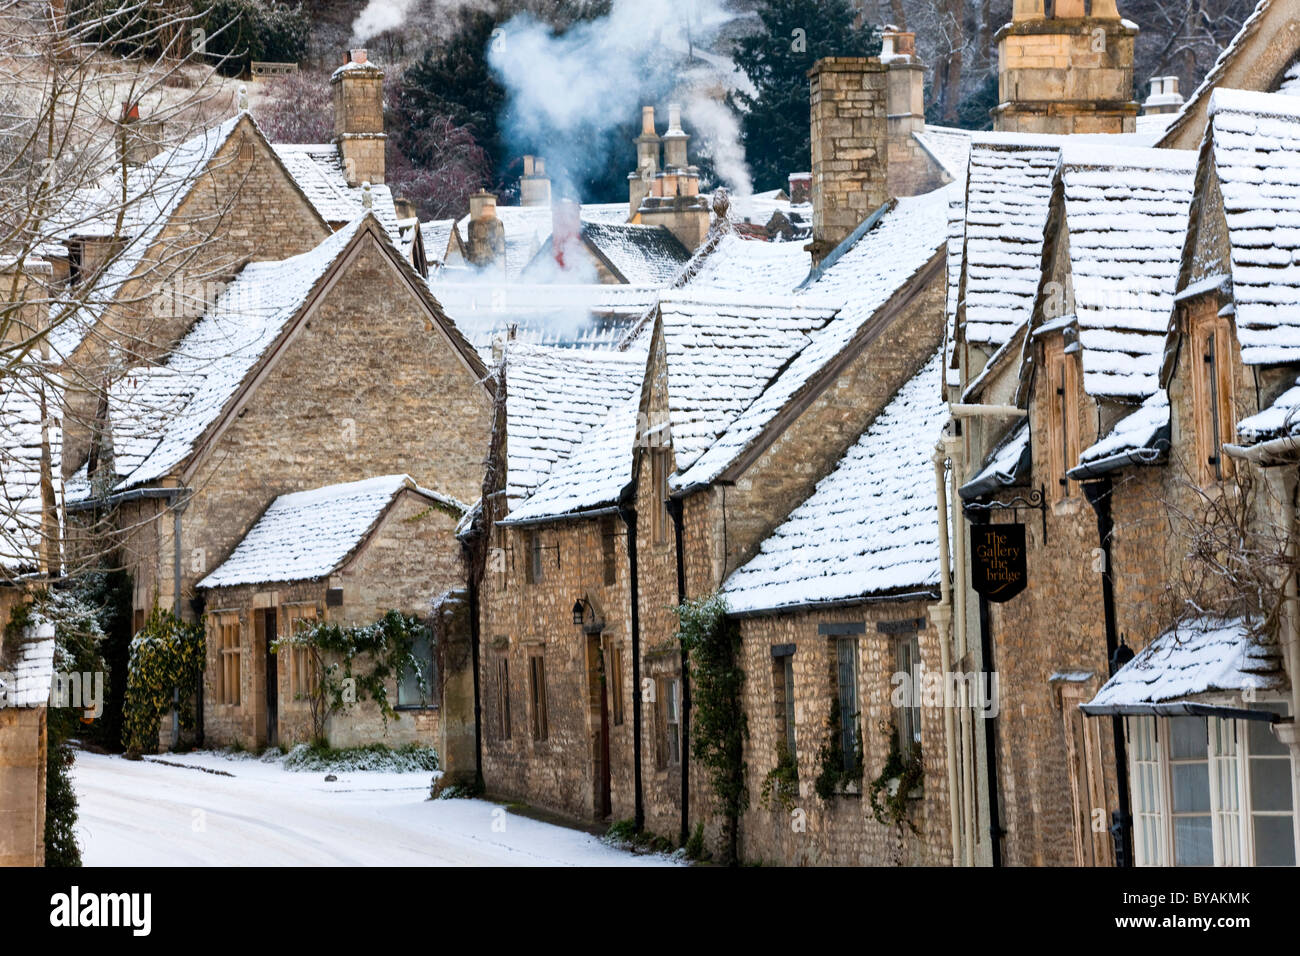 Castle Combe in the snow, Cotswolds, Wiltshire - Stock Image